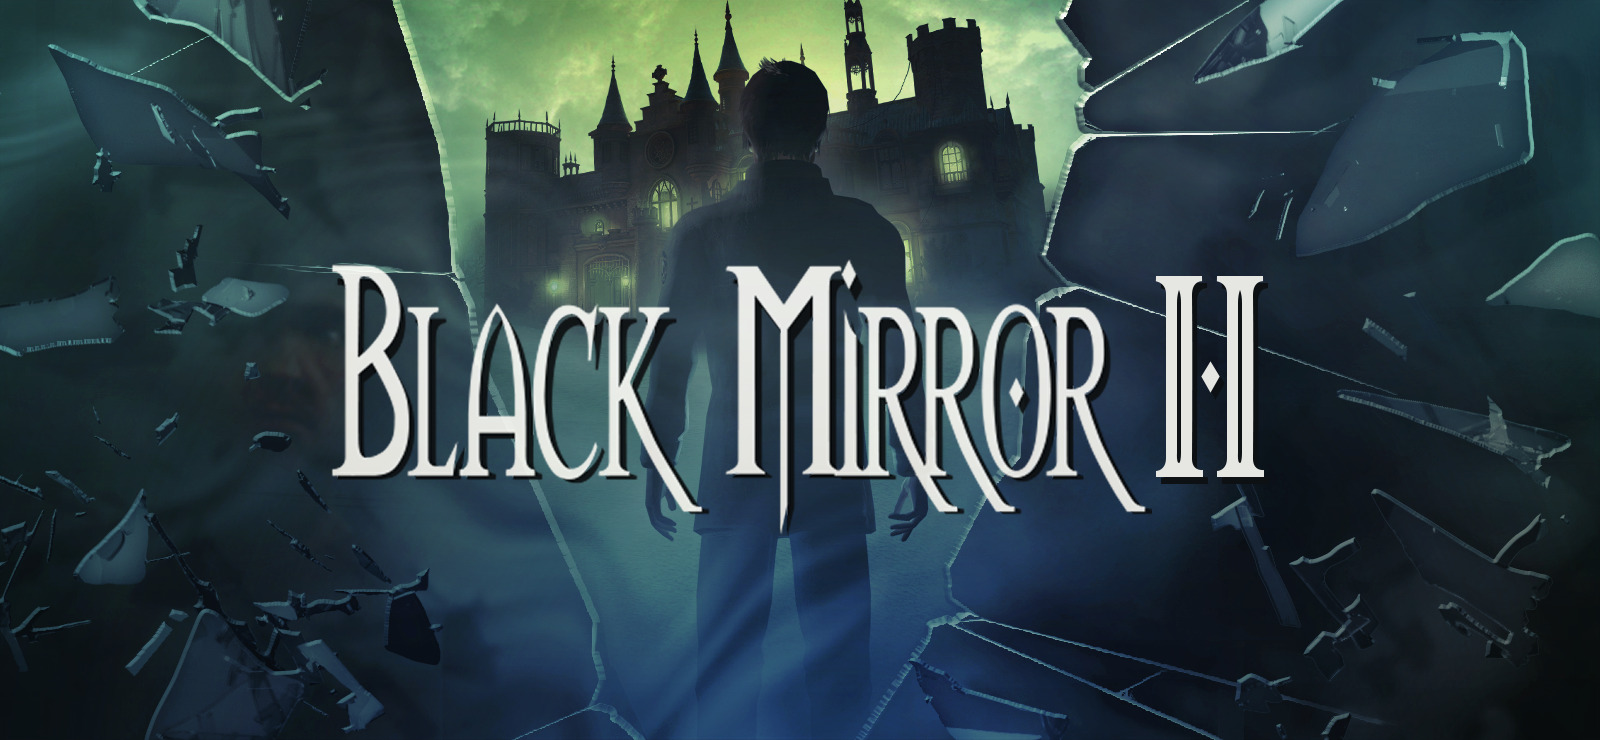 The Black Mirror Game Windows 7 Reversadermcreamcom